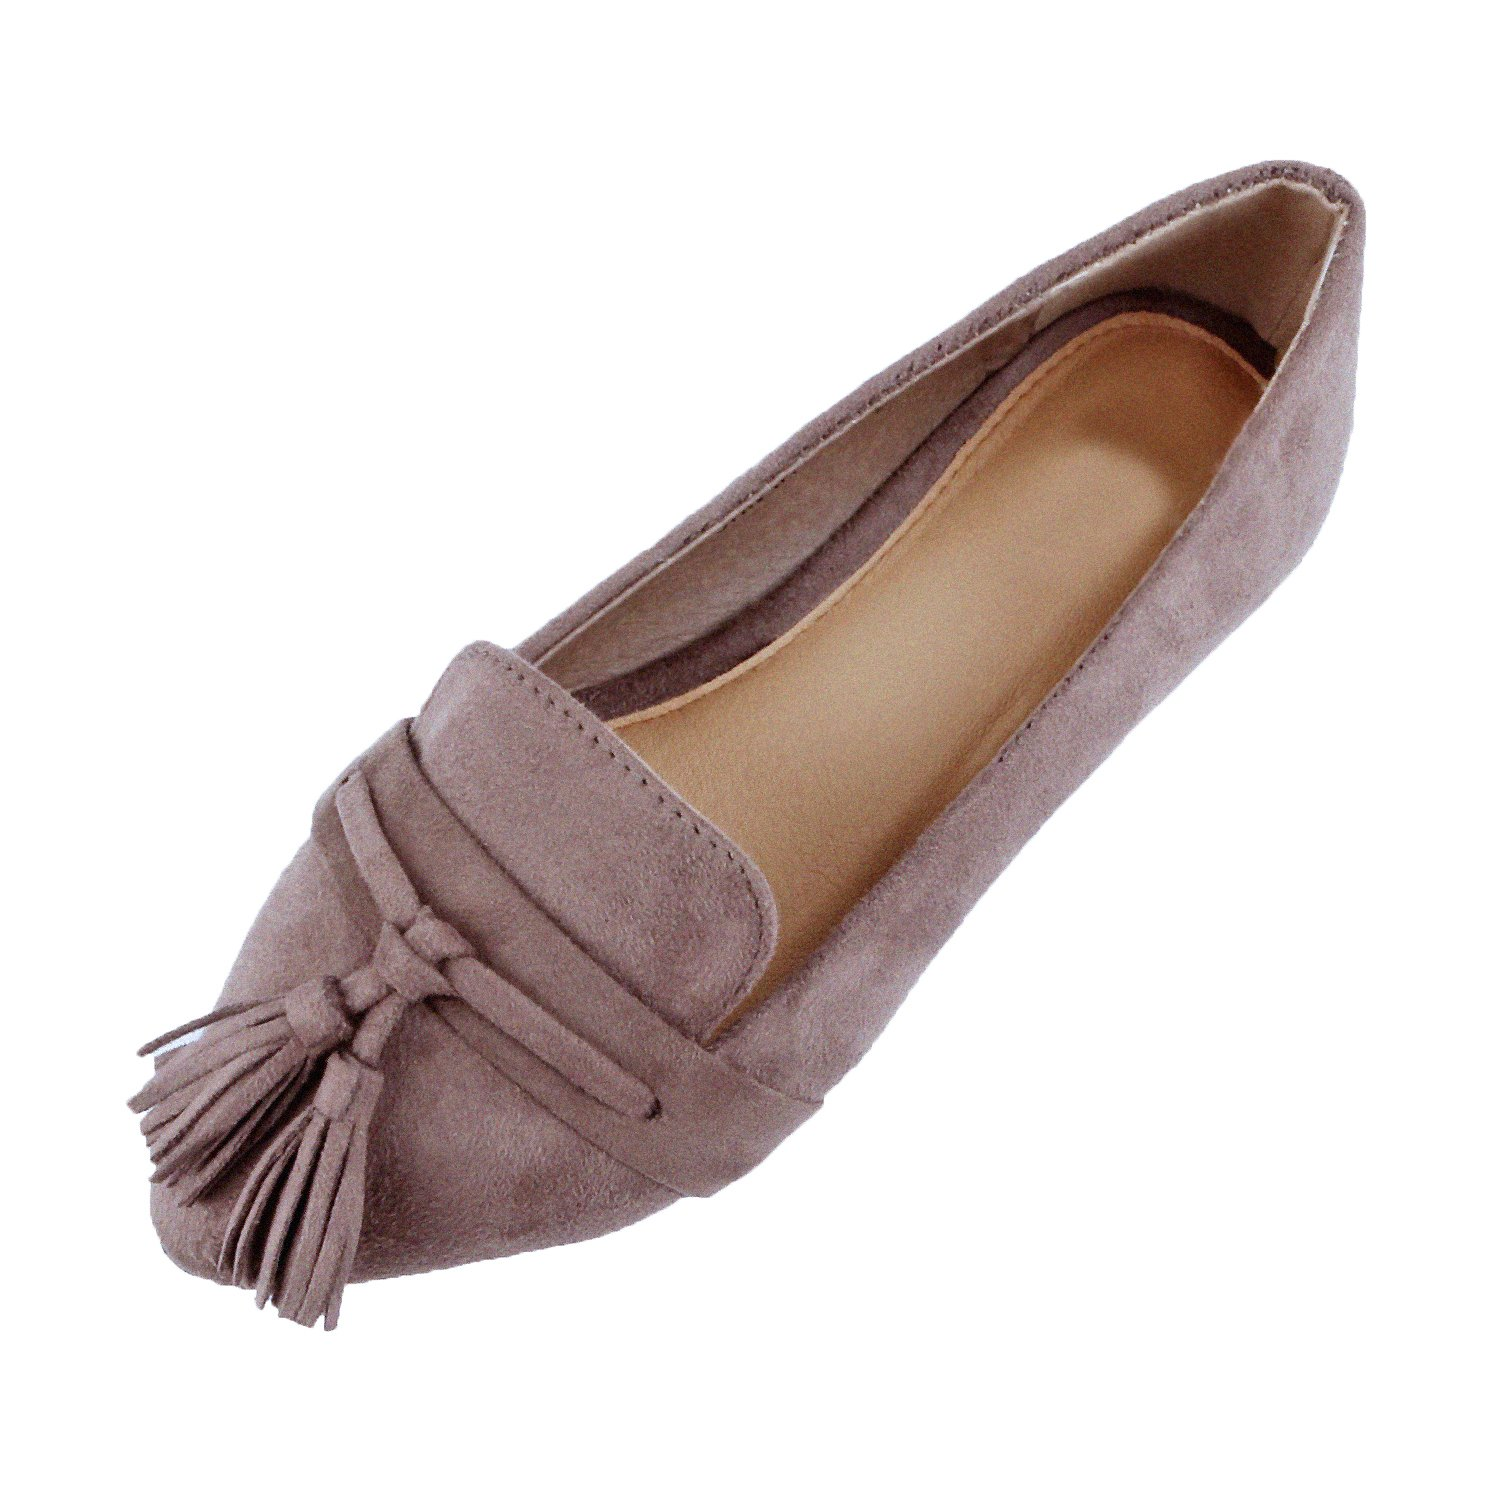 Guilty Heart | Women's Tassel Slip On Comfortable Pointy Toe Oxford Loafer | Faux Suede Espadrille Casual Flats